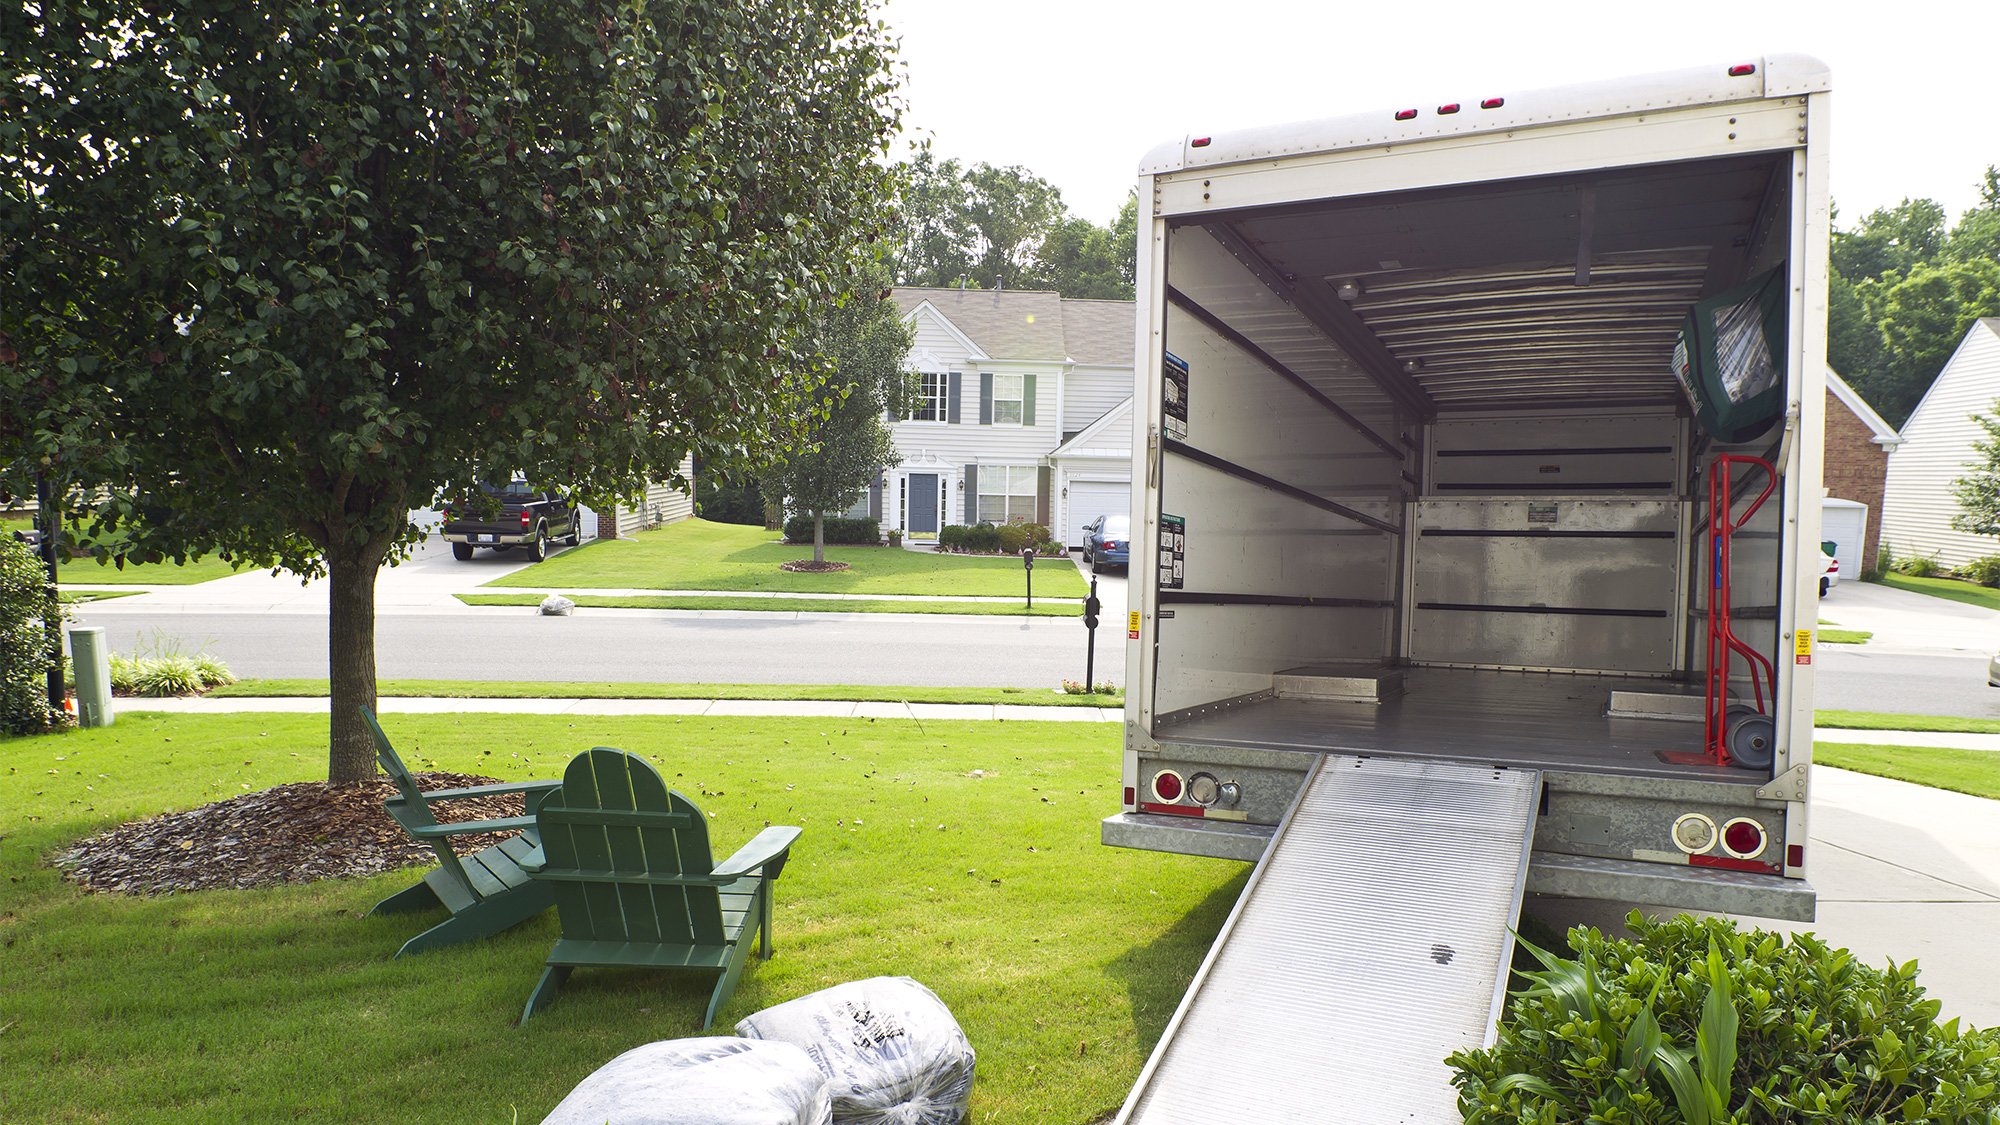 Good Looking For Ways To Cut Costs When Relocating? Consider A Do It Yourself  Move By Renting A Moving Truck From Companies Like U Haul, Budget, Penske  Or UPack.